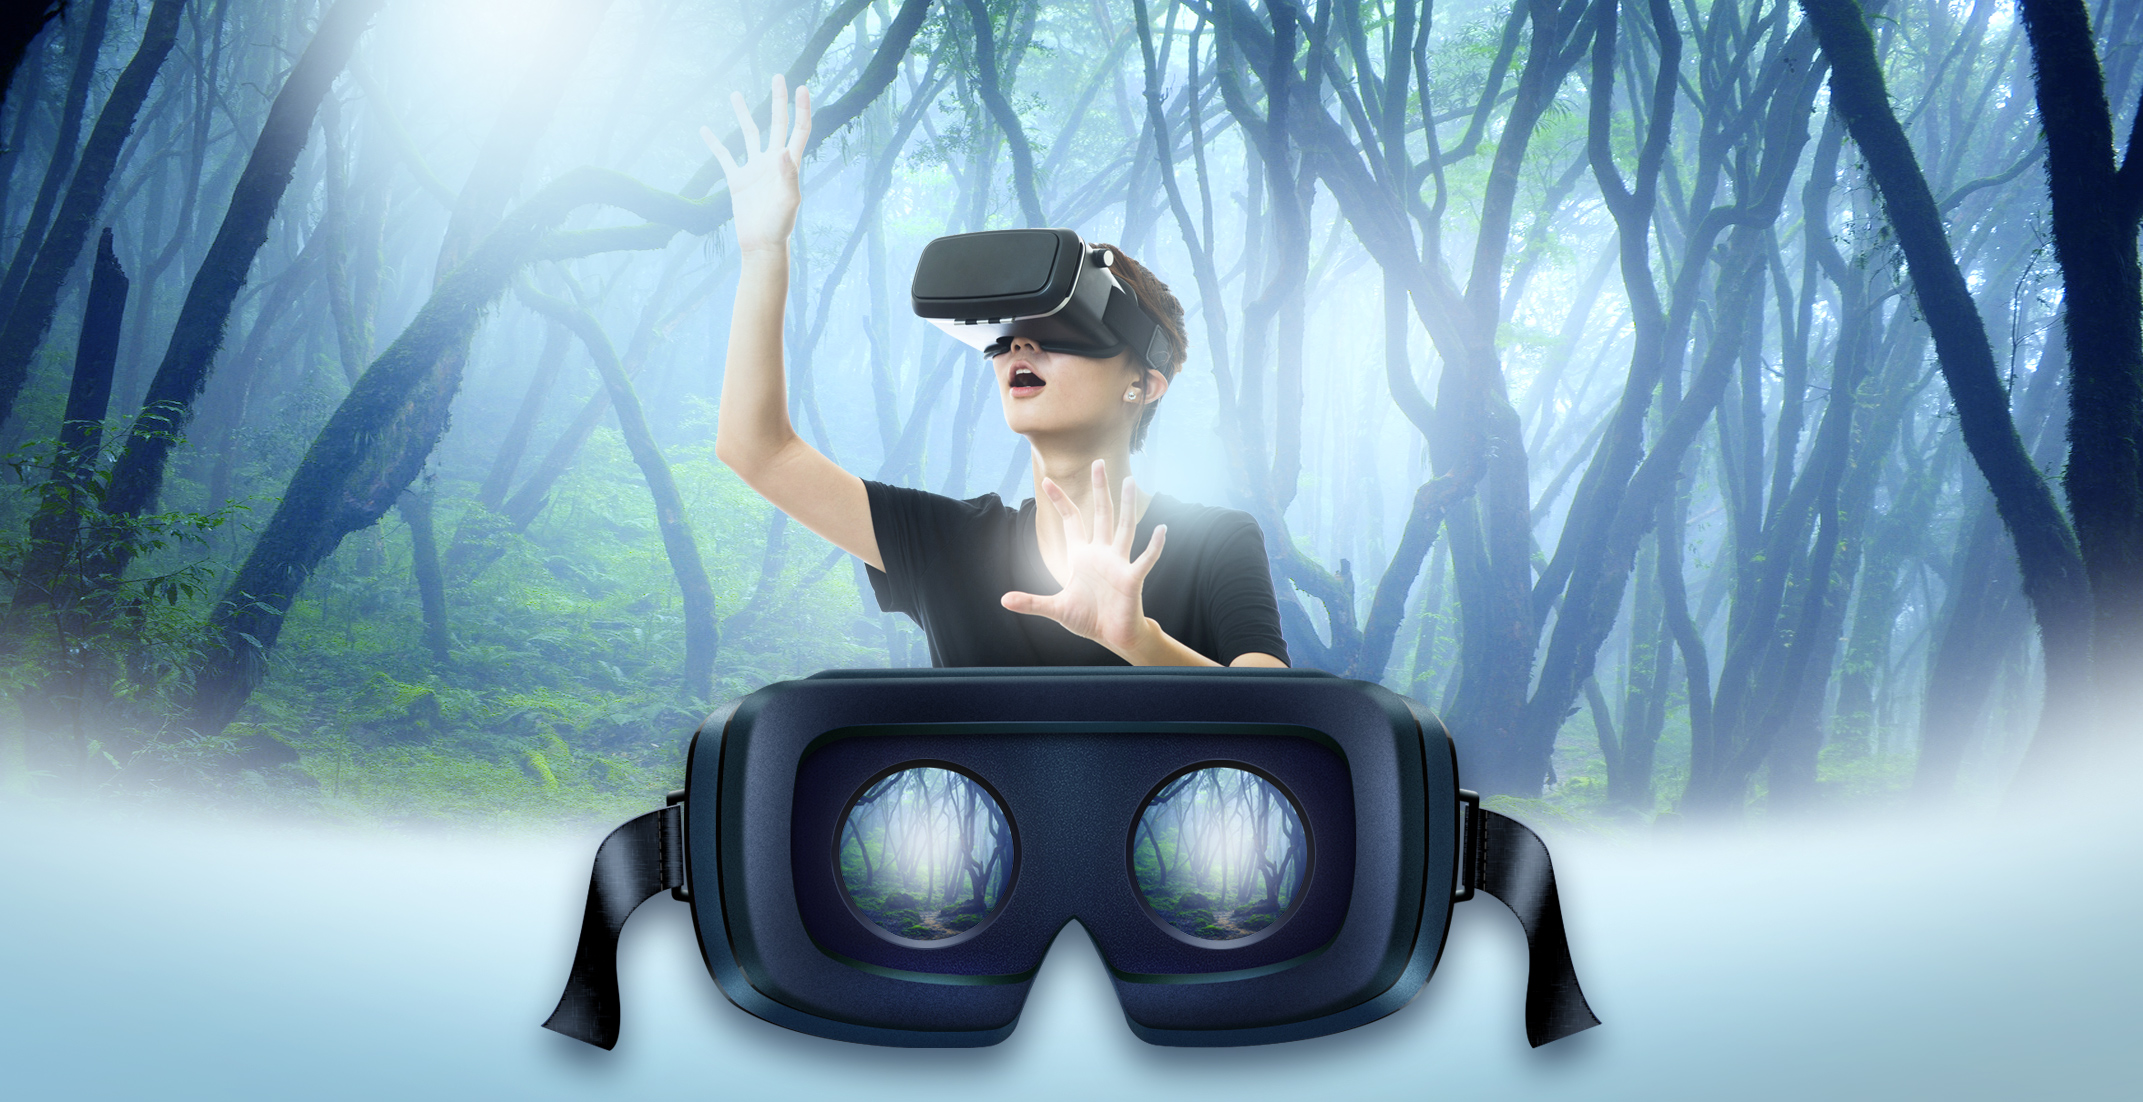 af24235f2b2ce6 Create Virtual Reality (VR) projects